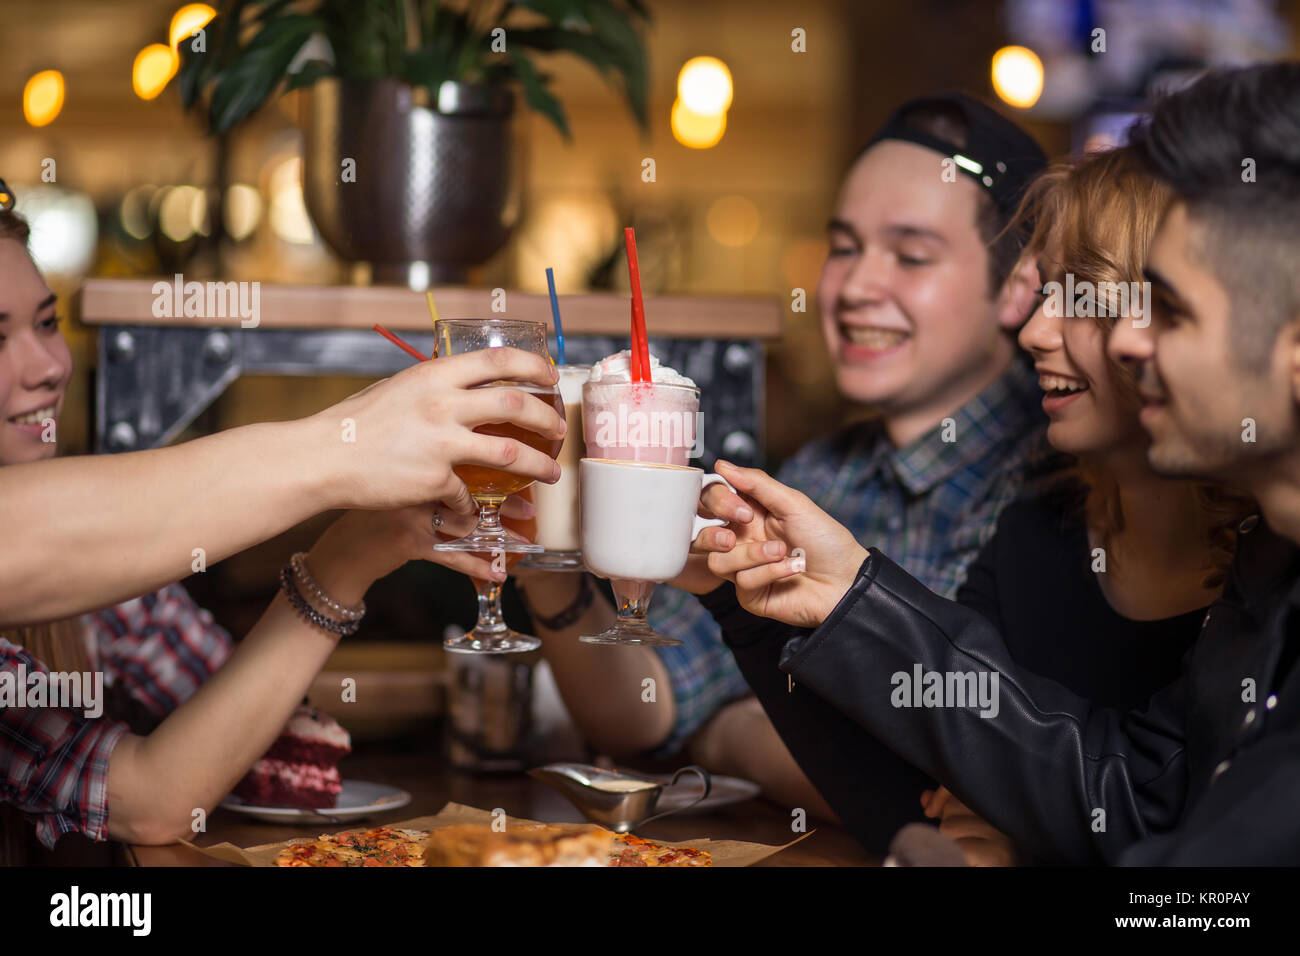 People Meeting Friendship Togetherness Coffee Shop Concept - Stock Image